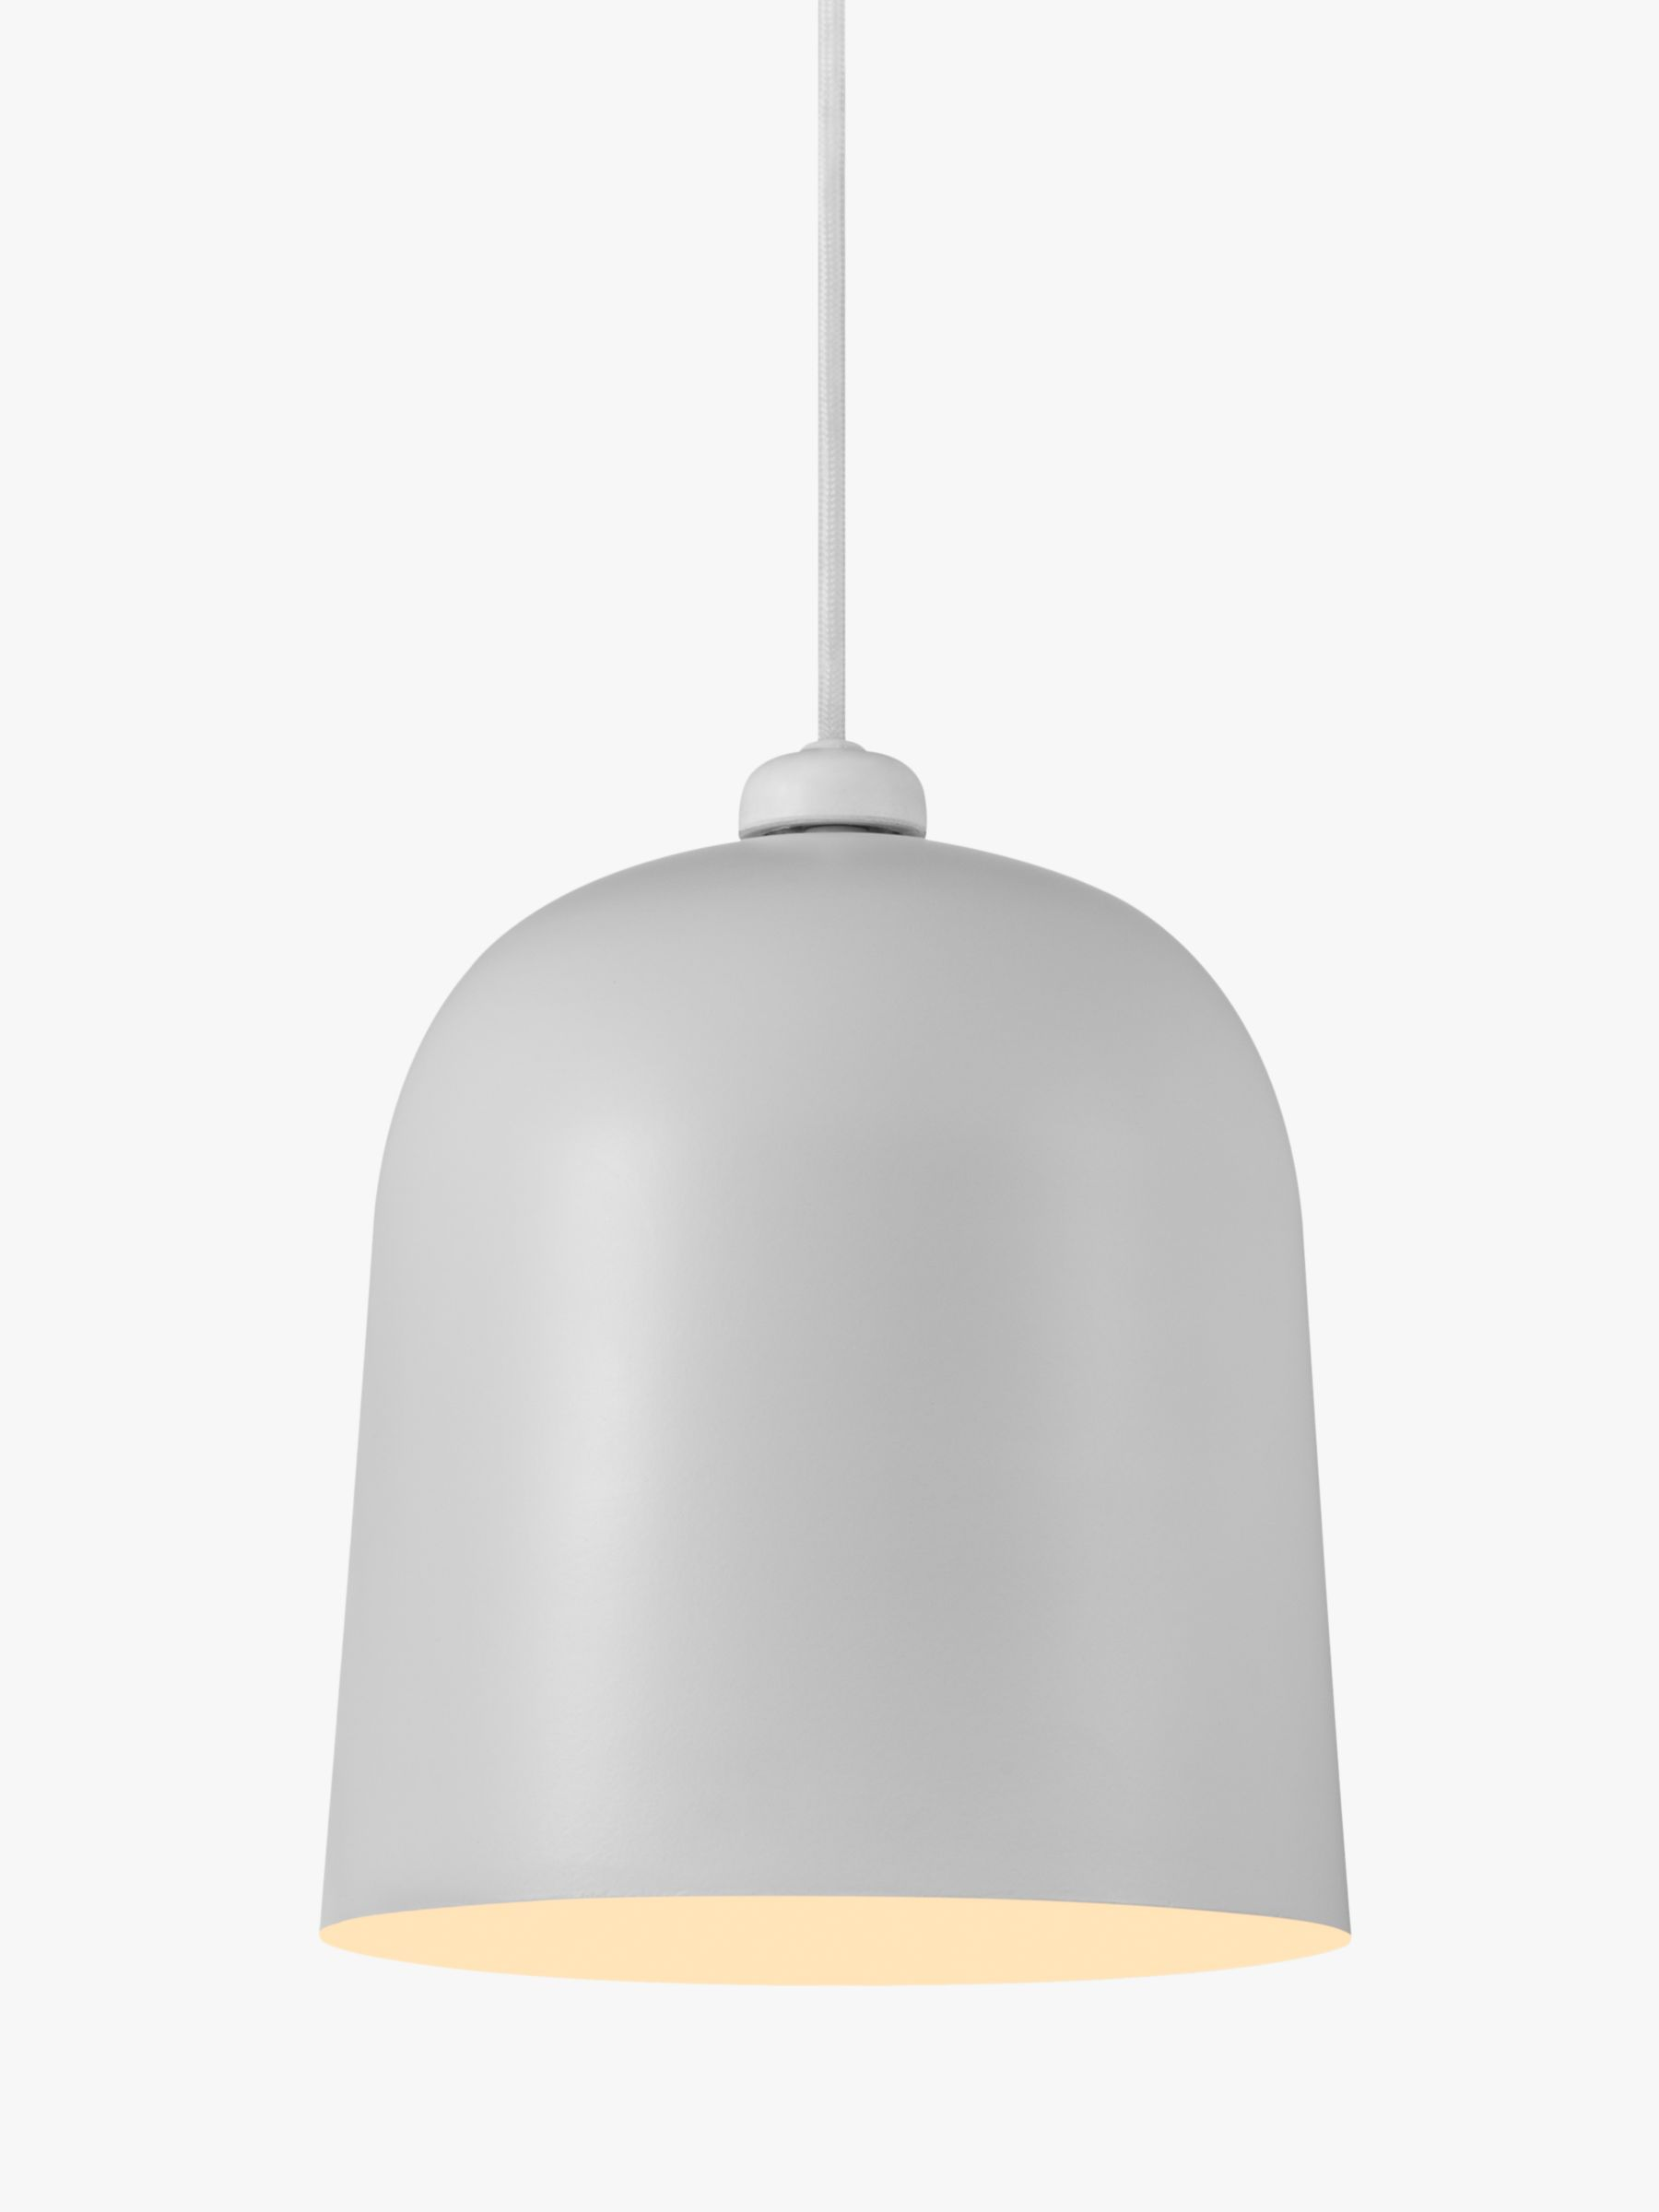 Nordlux Nordlux Design For The People Angle LED Ceiling Light, White